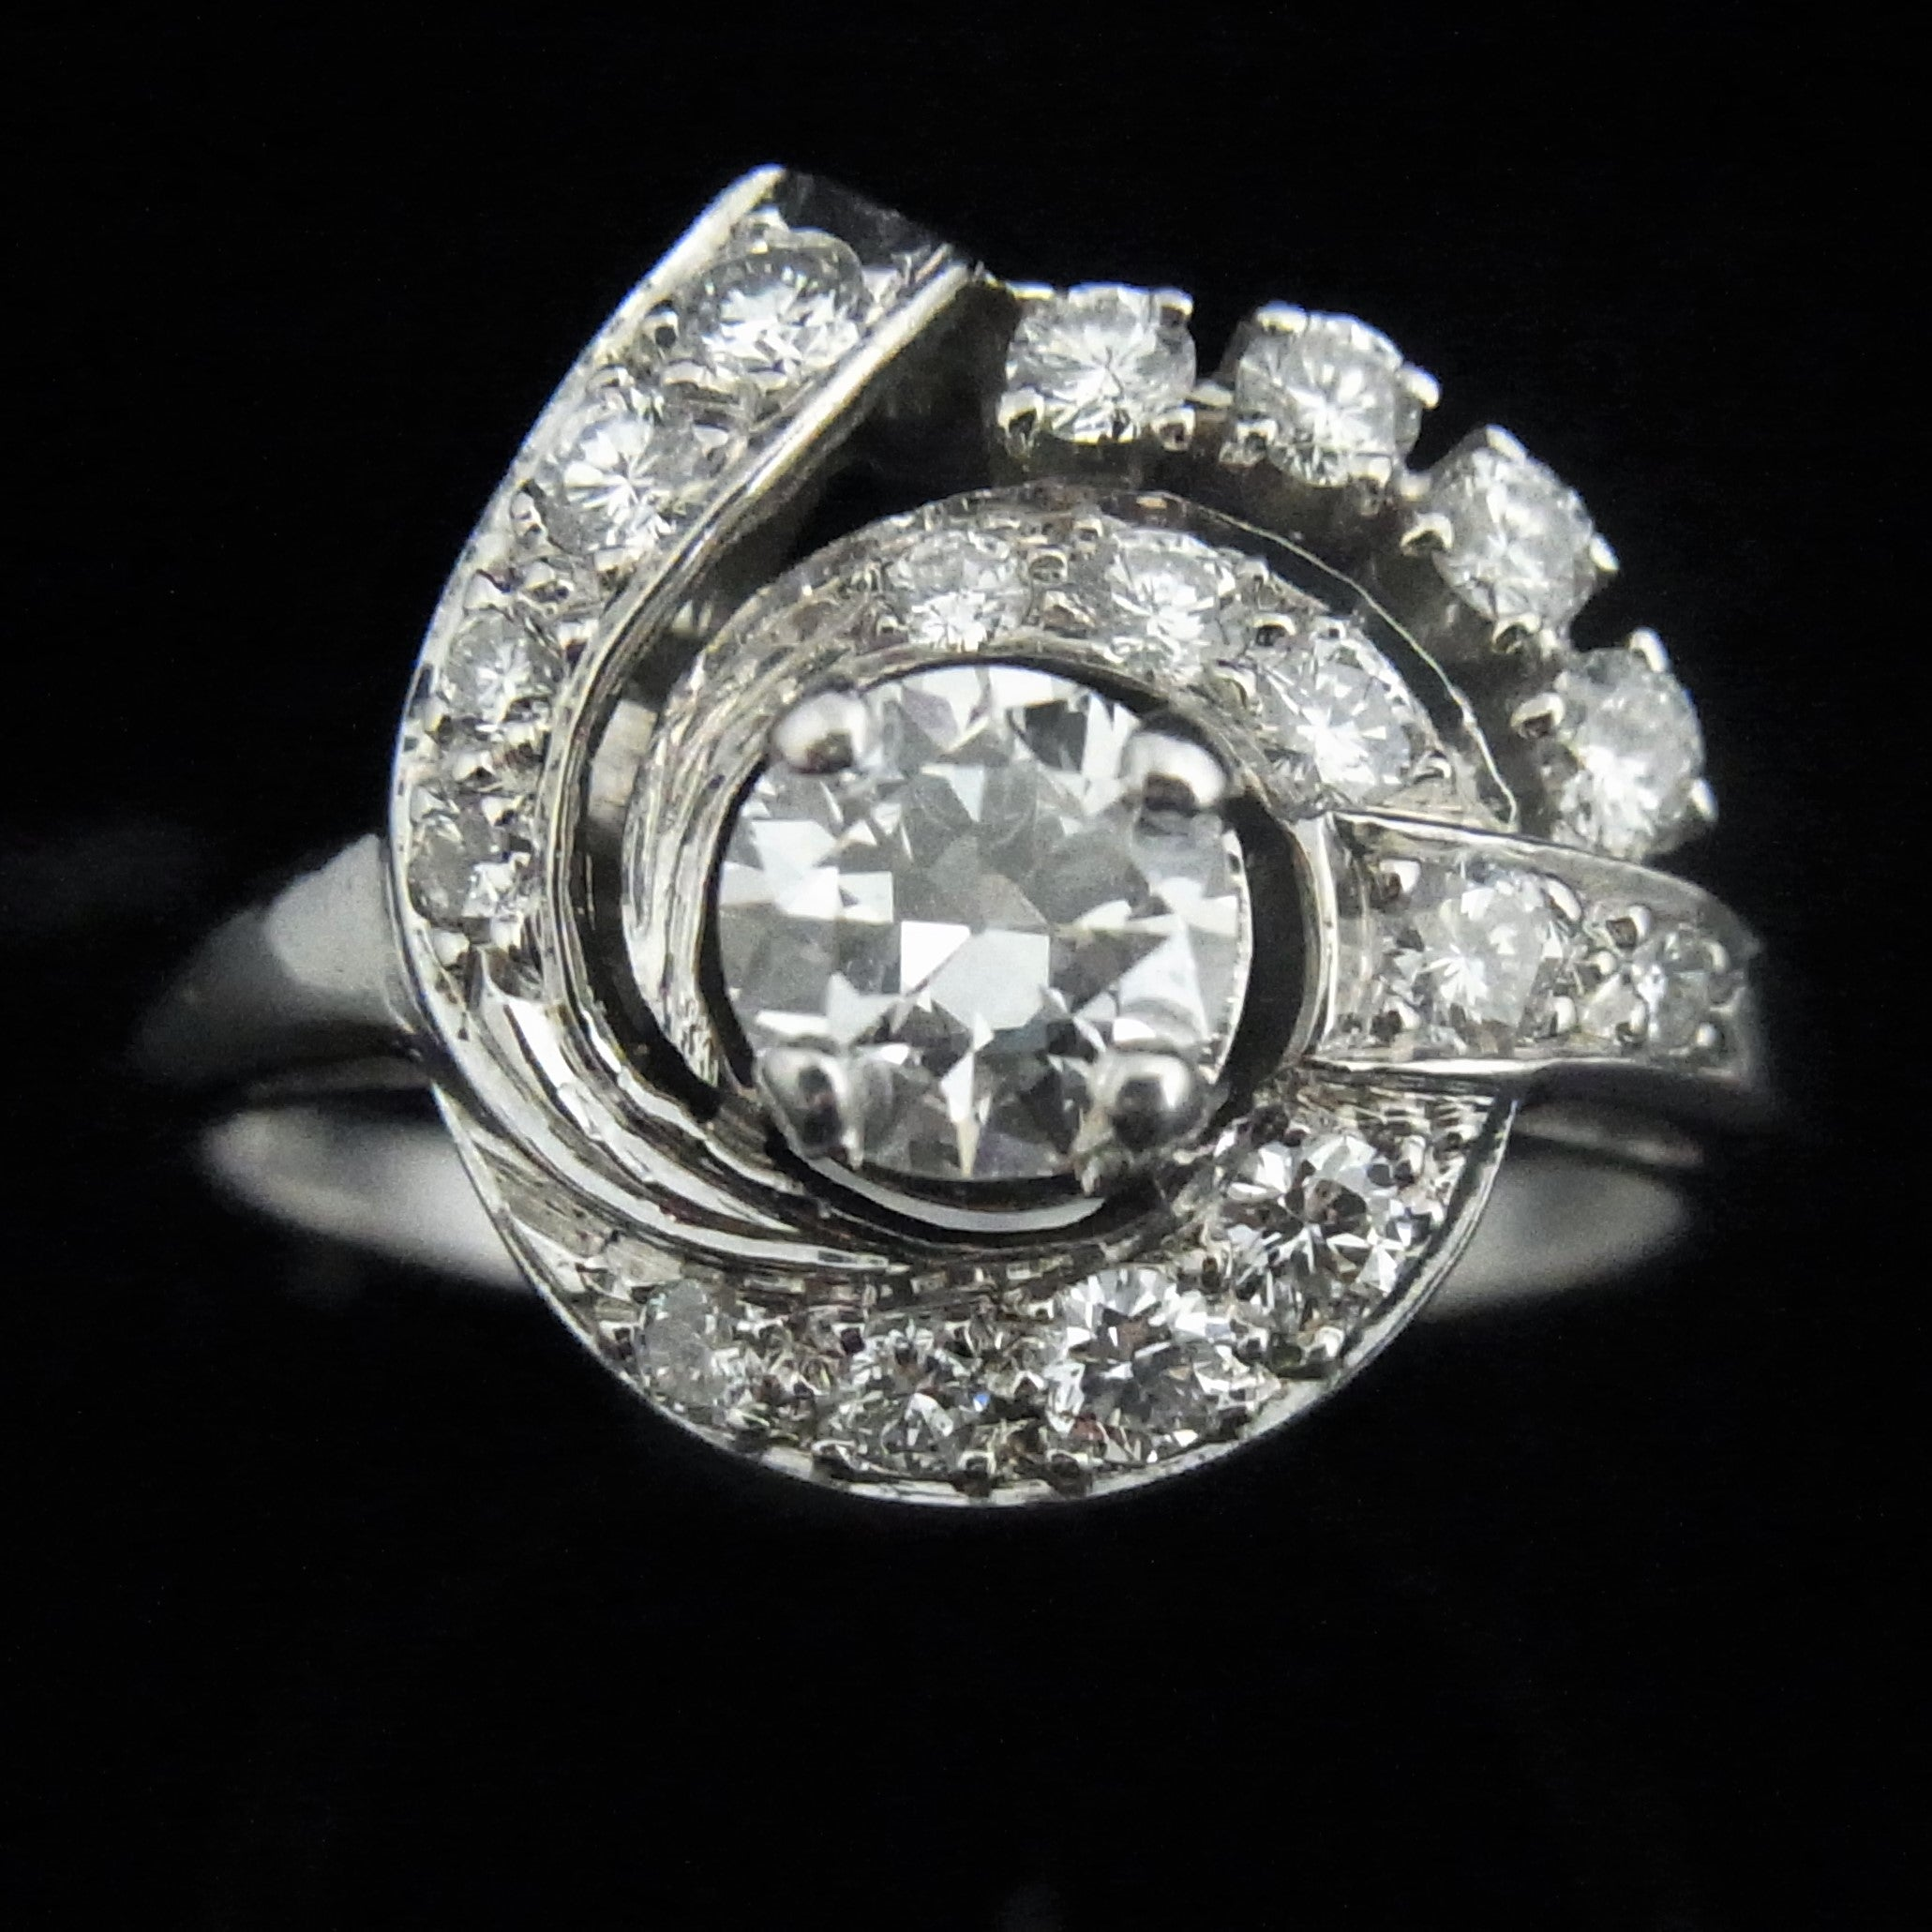 estate wedding stone vintage usa radiant engagement egl cut pin in anniversary diamond ring